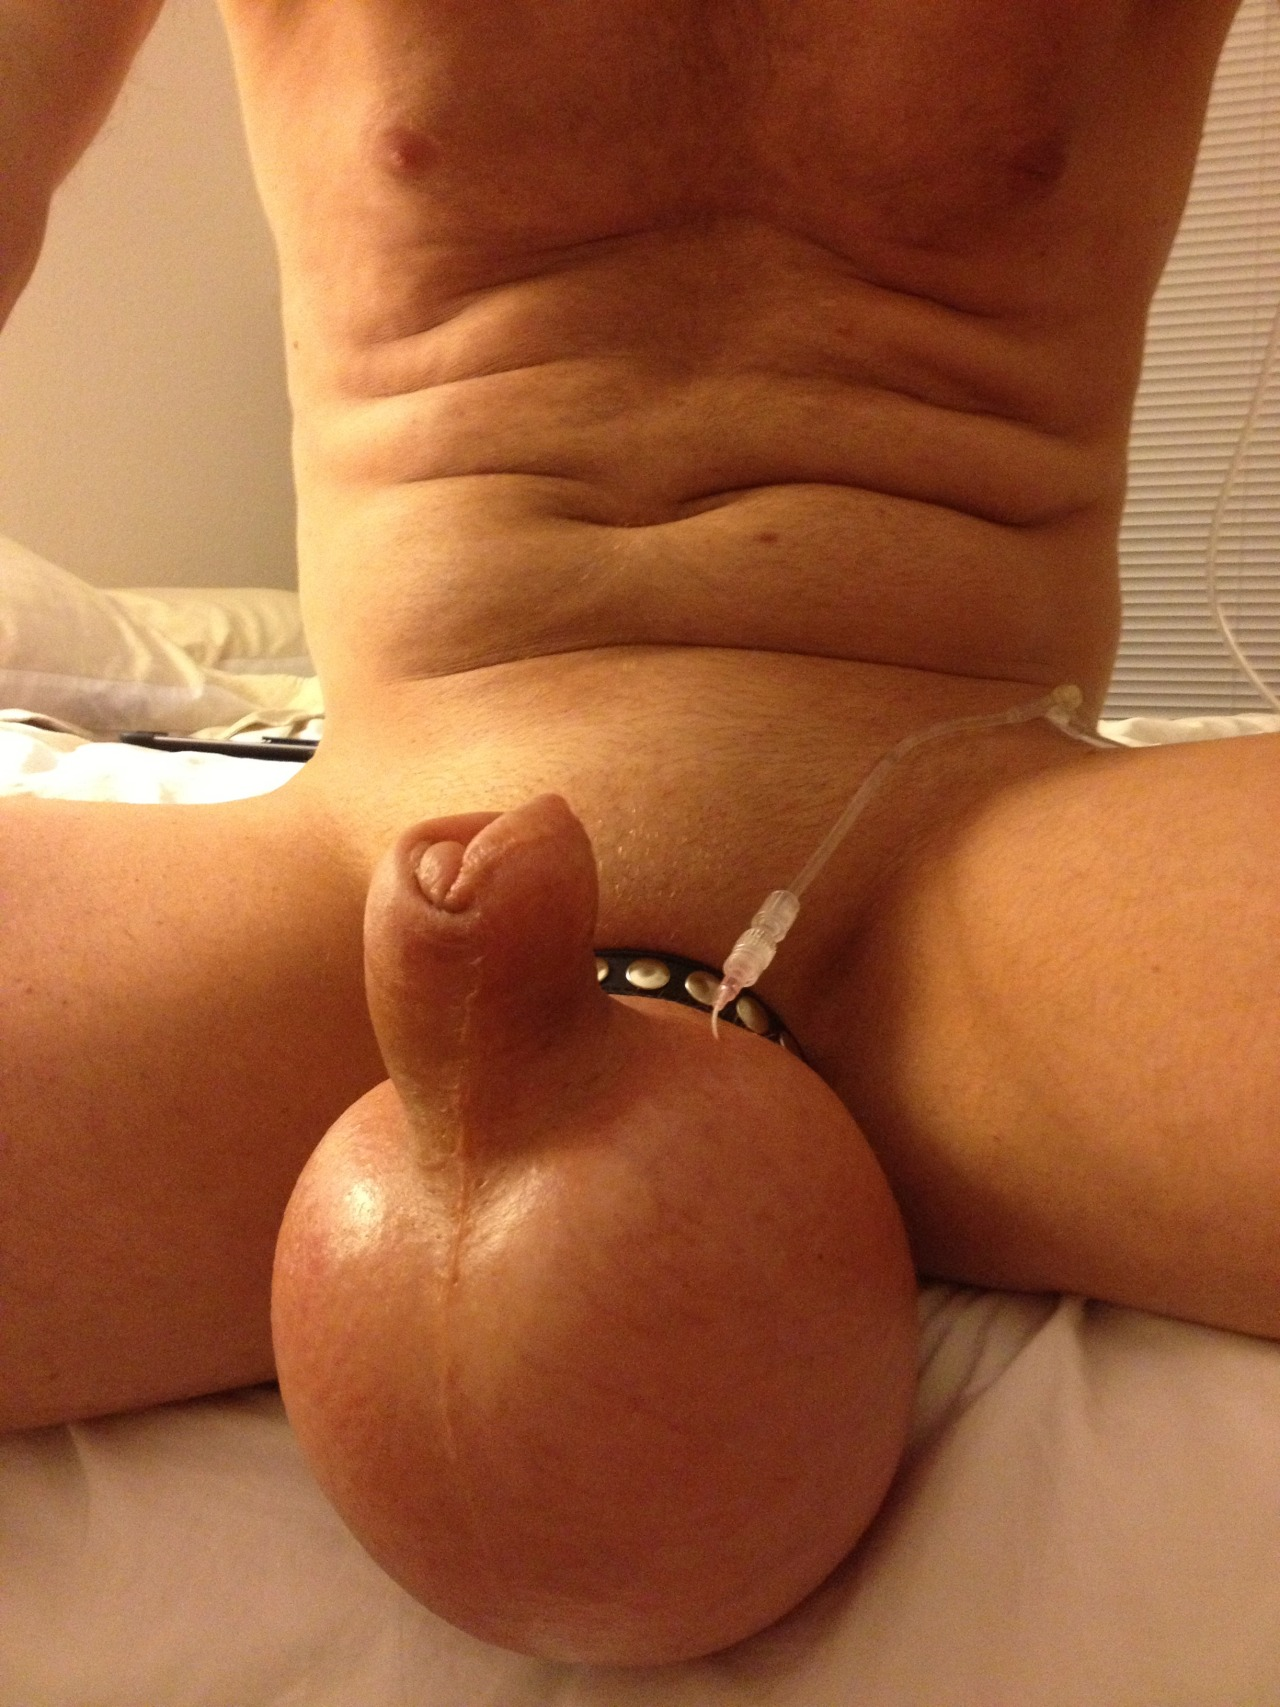 Weird Saline Injected Cock And Balls Porned Up